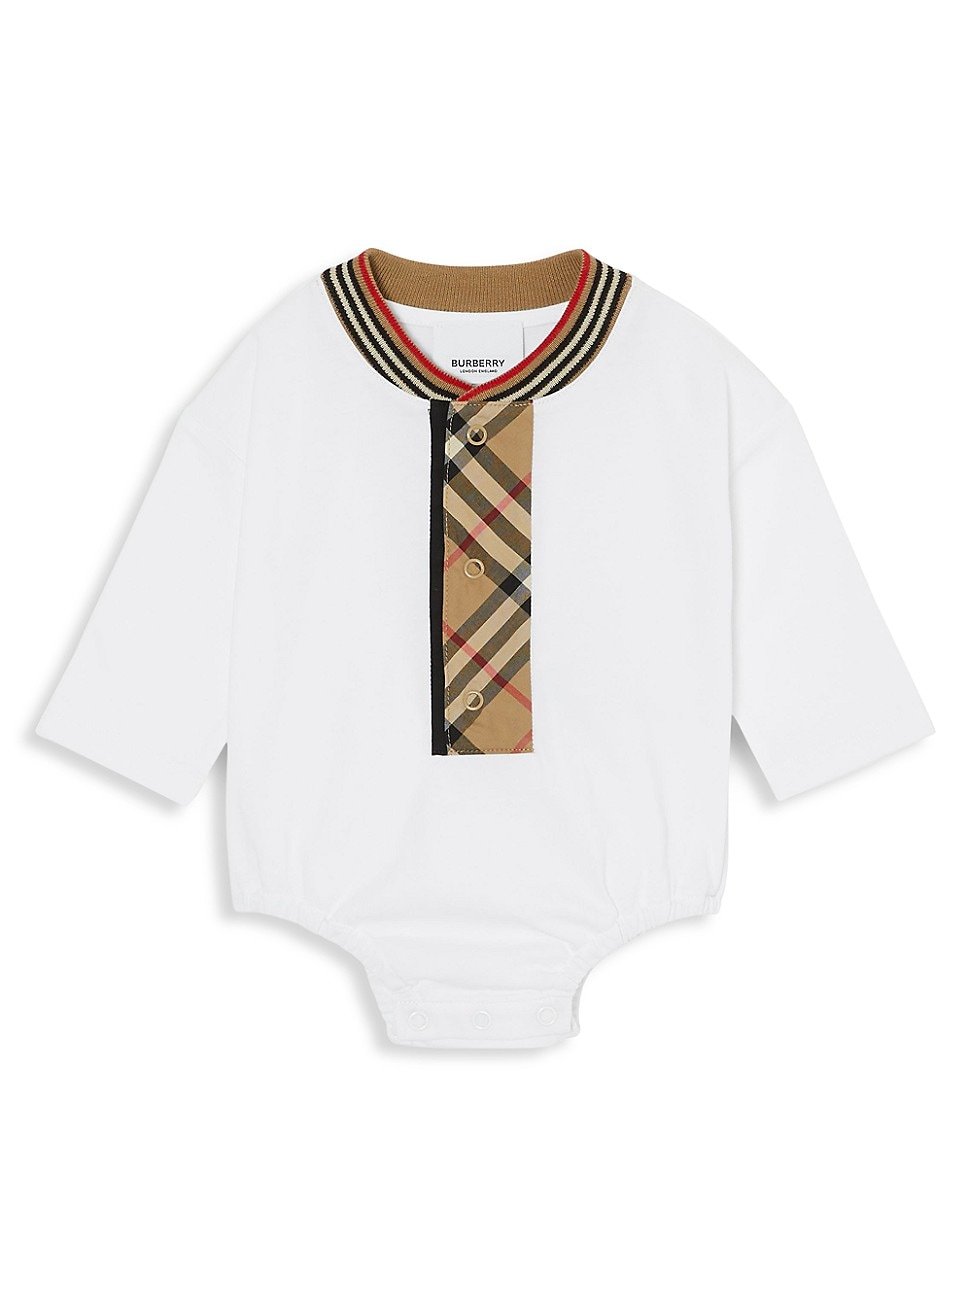 Burberry BABY'S KNOX CHECK BODYSUIT